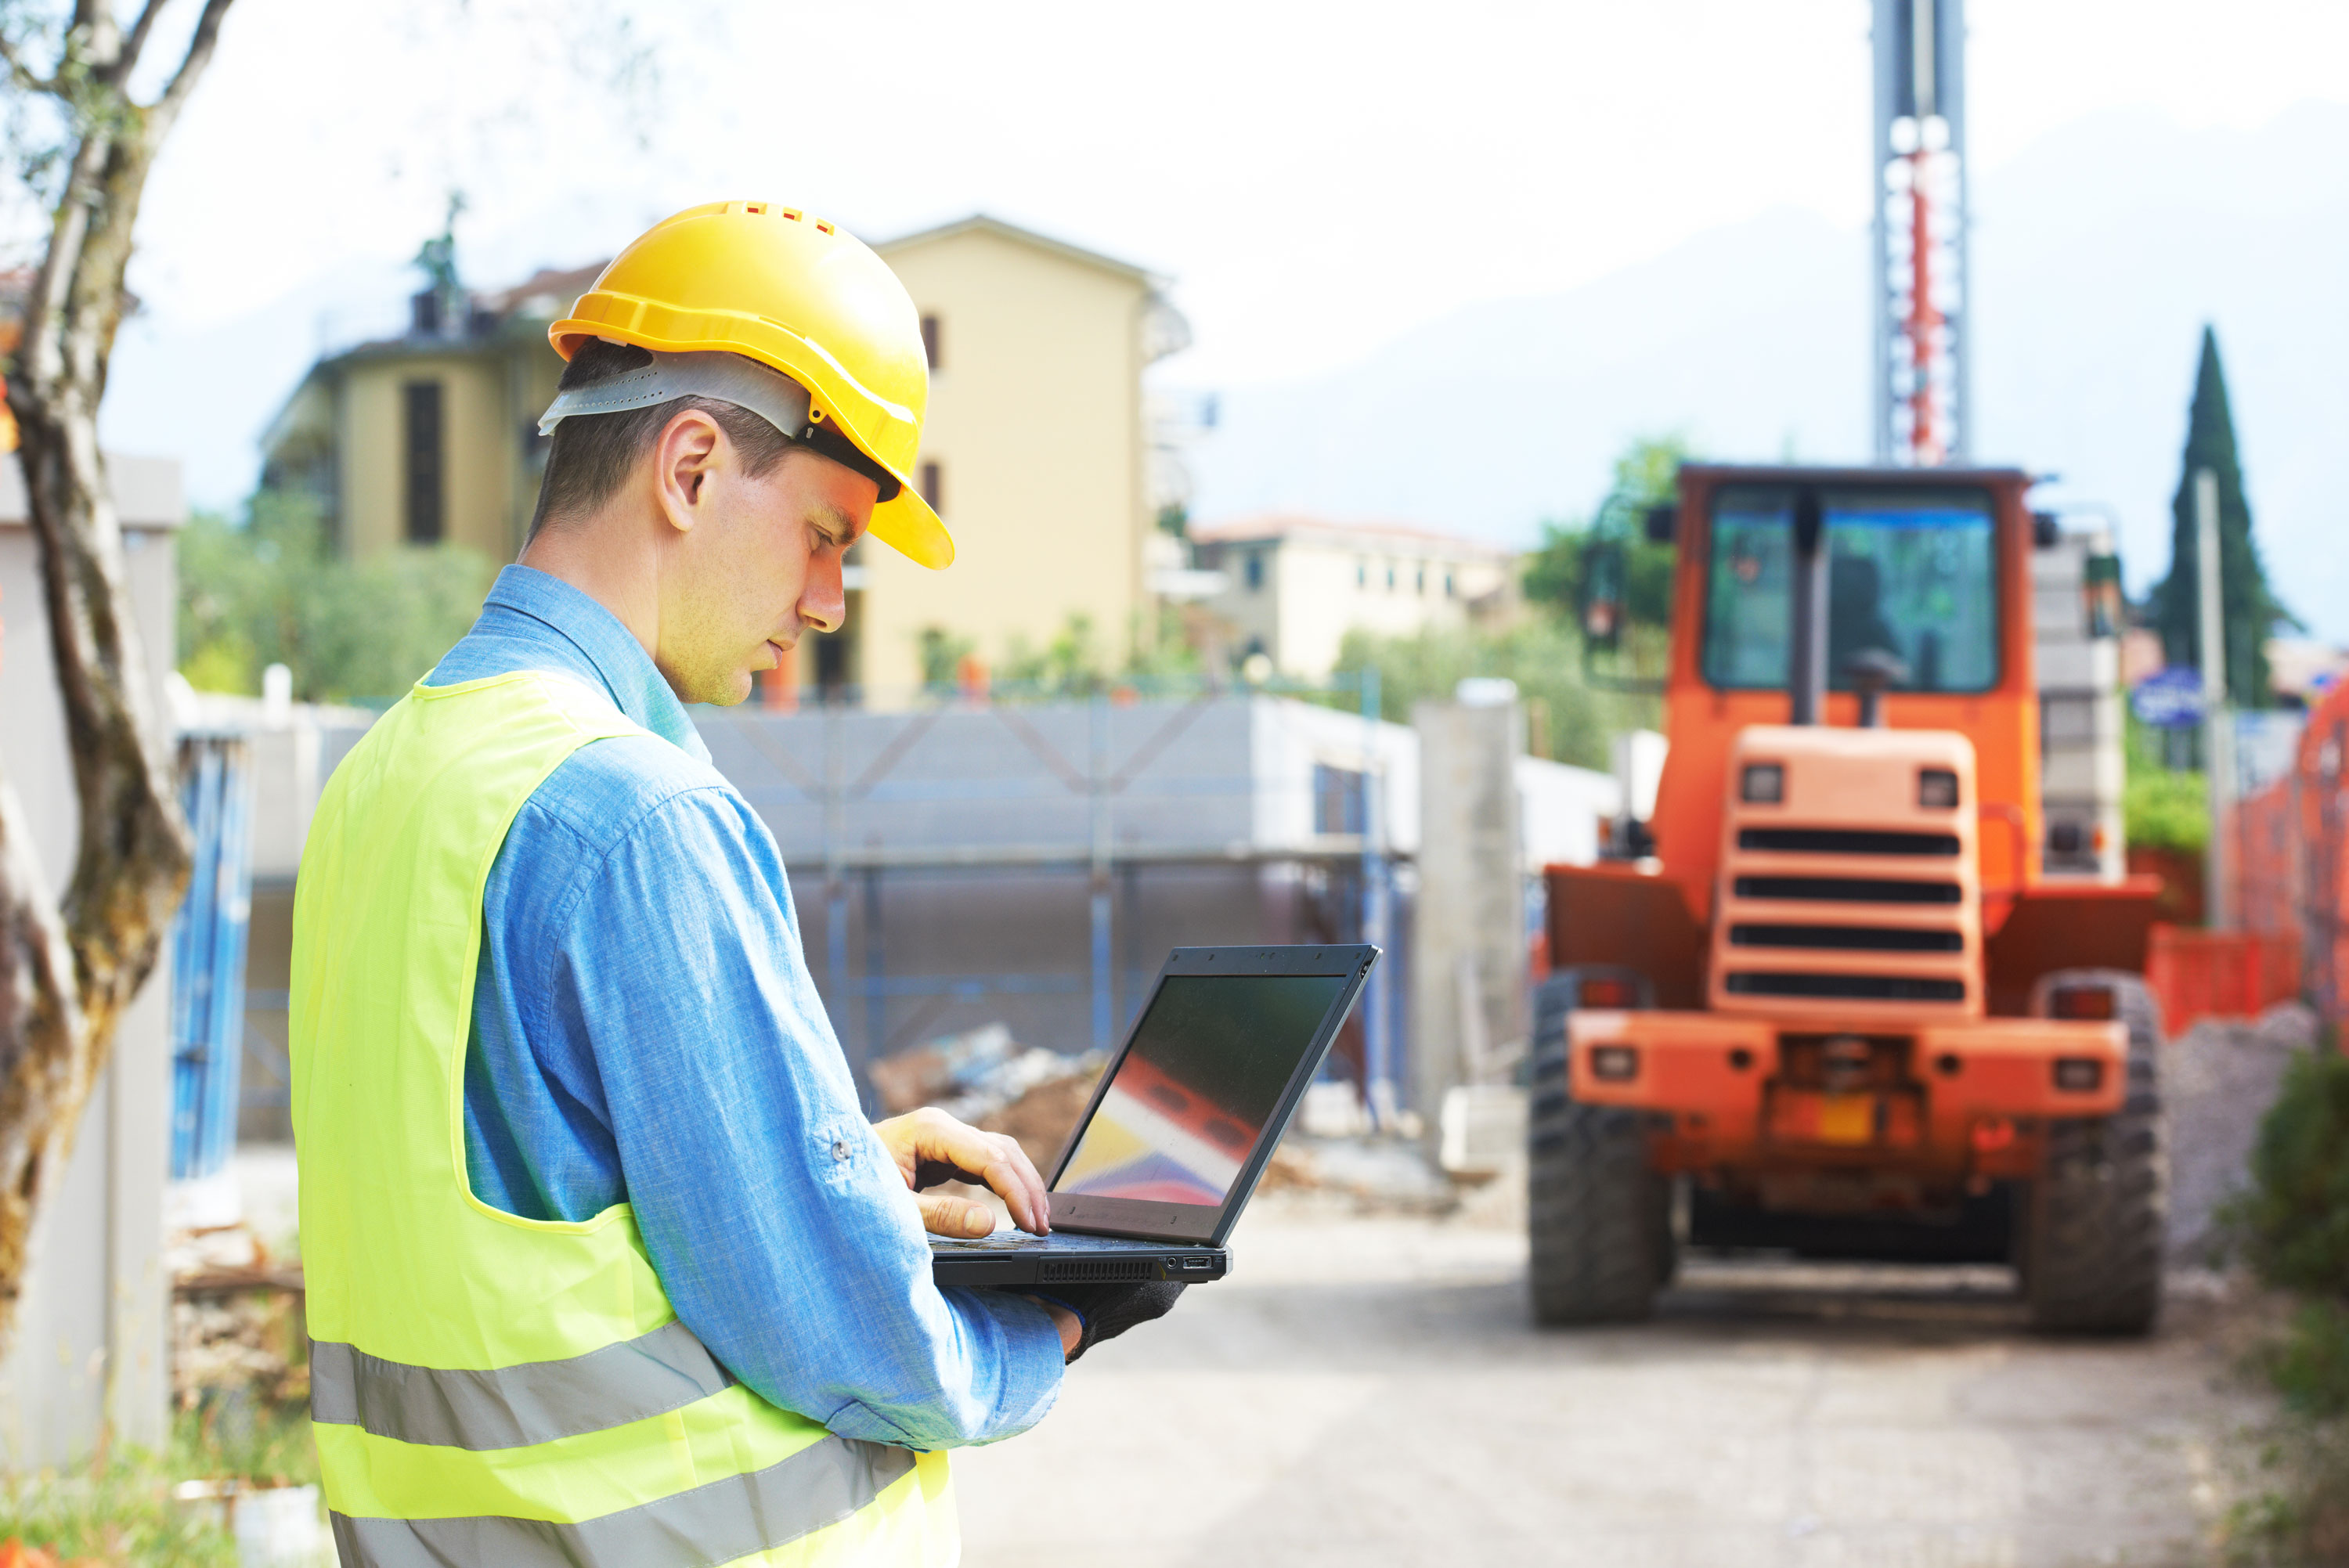 construction site foreman uses a computer on the job